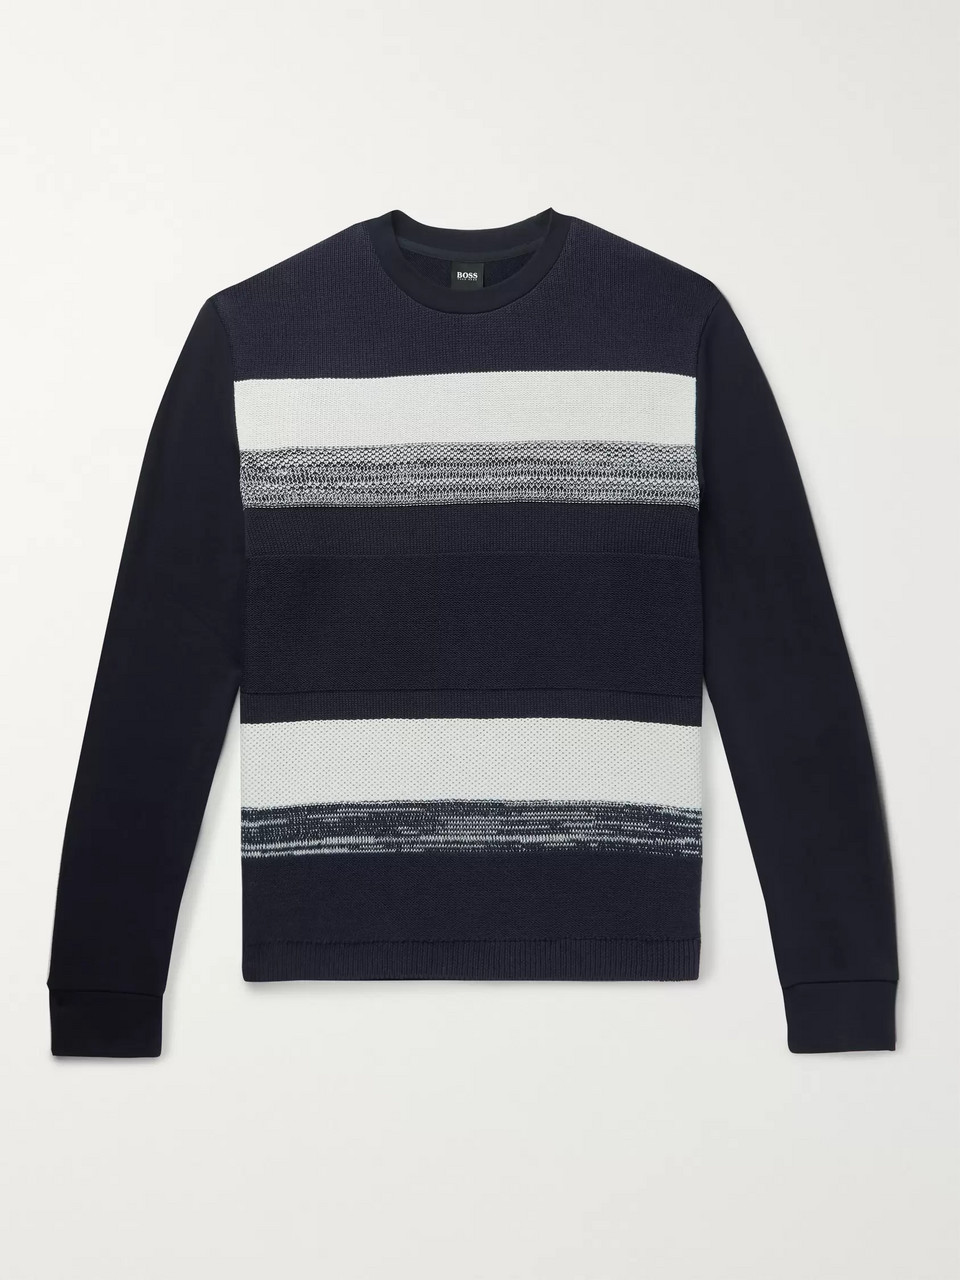 Hugo Boss Striped Cotton and Loopback Cotton-Jersey Sweatshirt